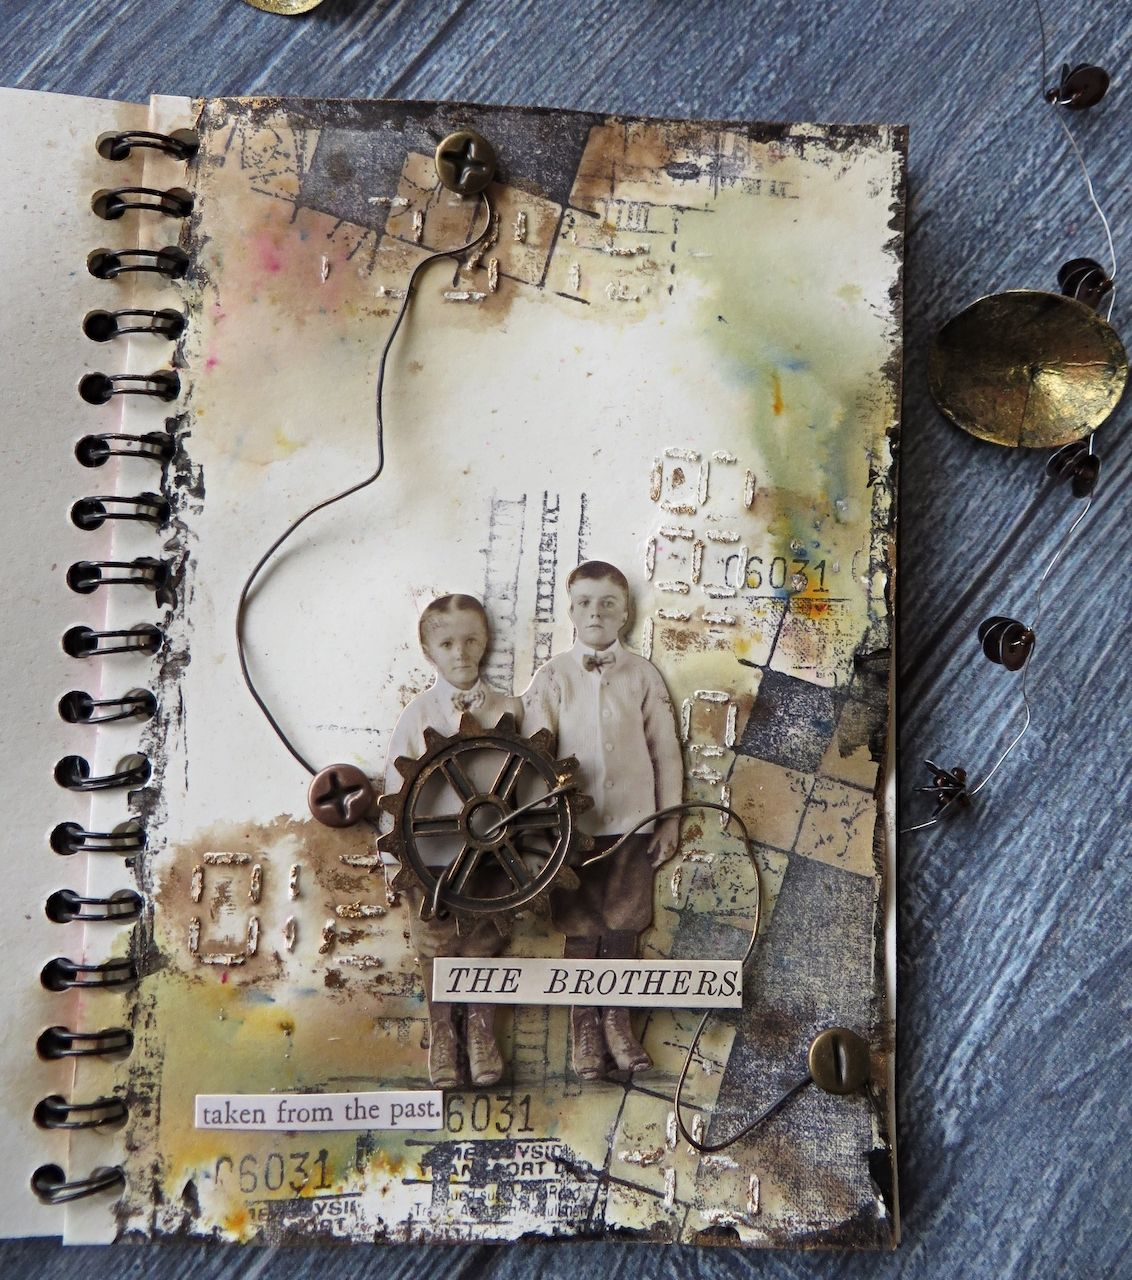 Art Journal Grungy And Vintage Mixed Media Project Lemon Creation Art Journal Mini Art Journal Art Journal Pages